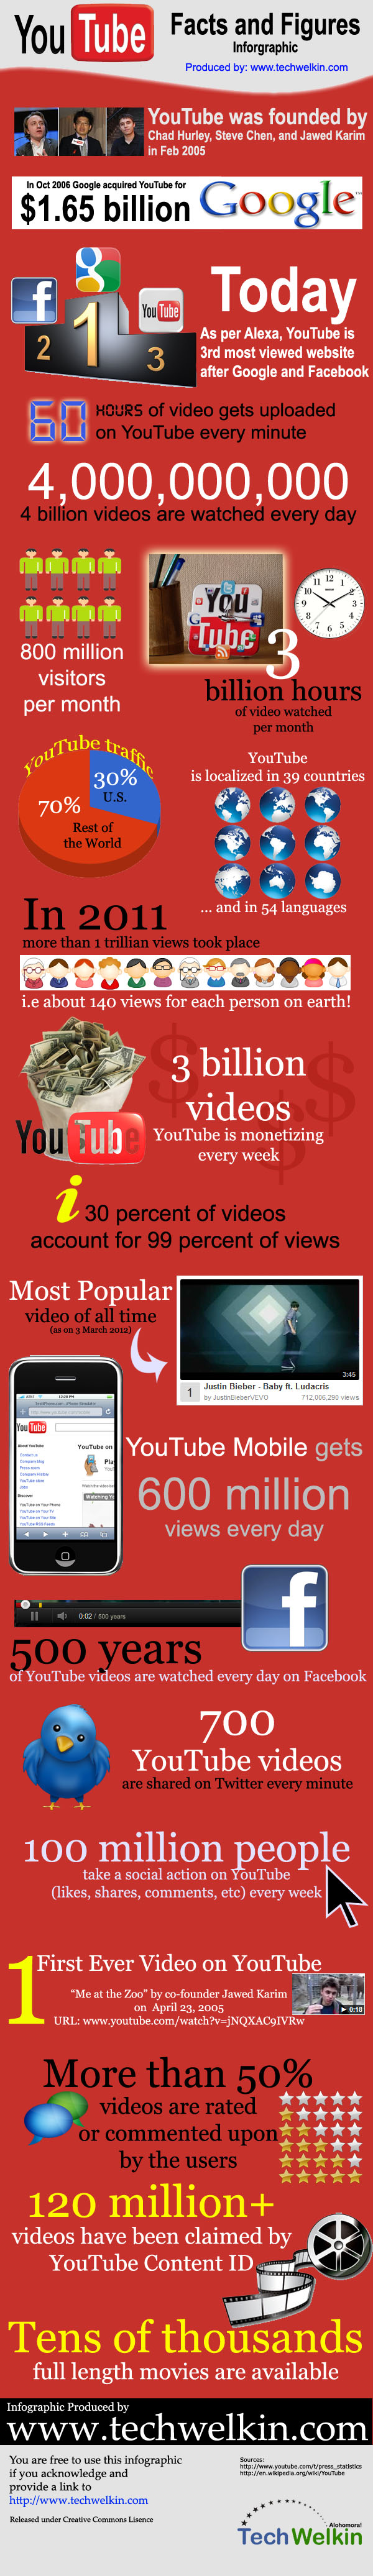 youtube-facts-figures-by-techwelkin